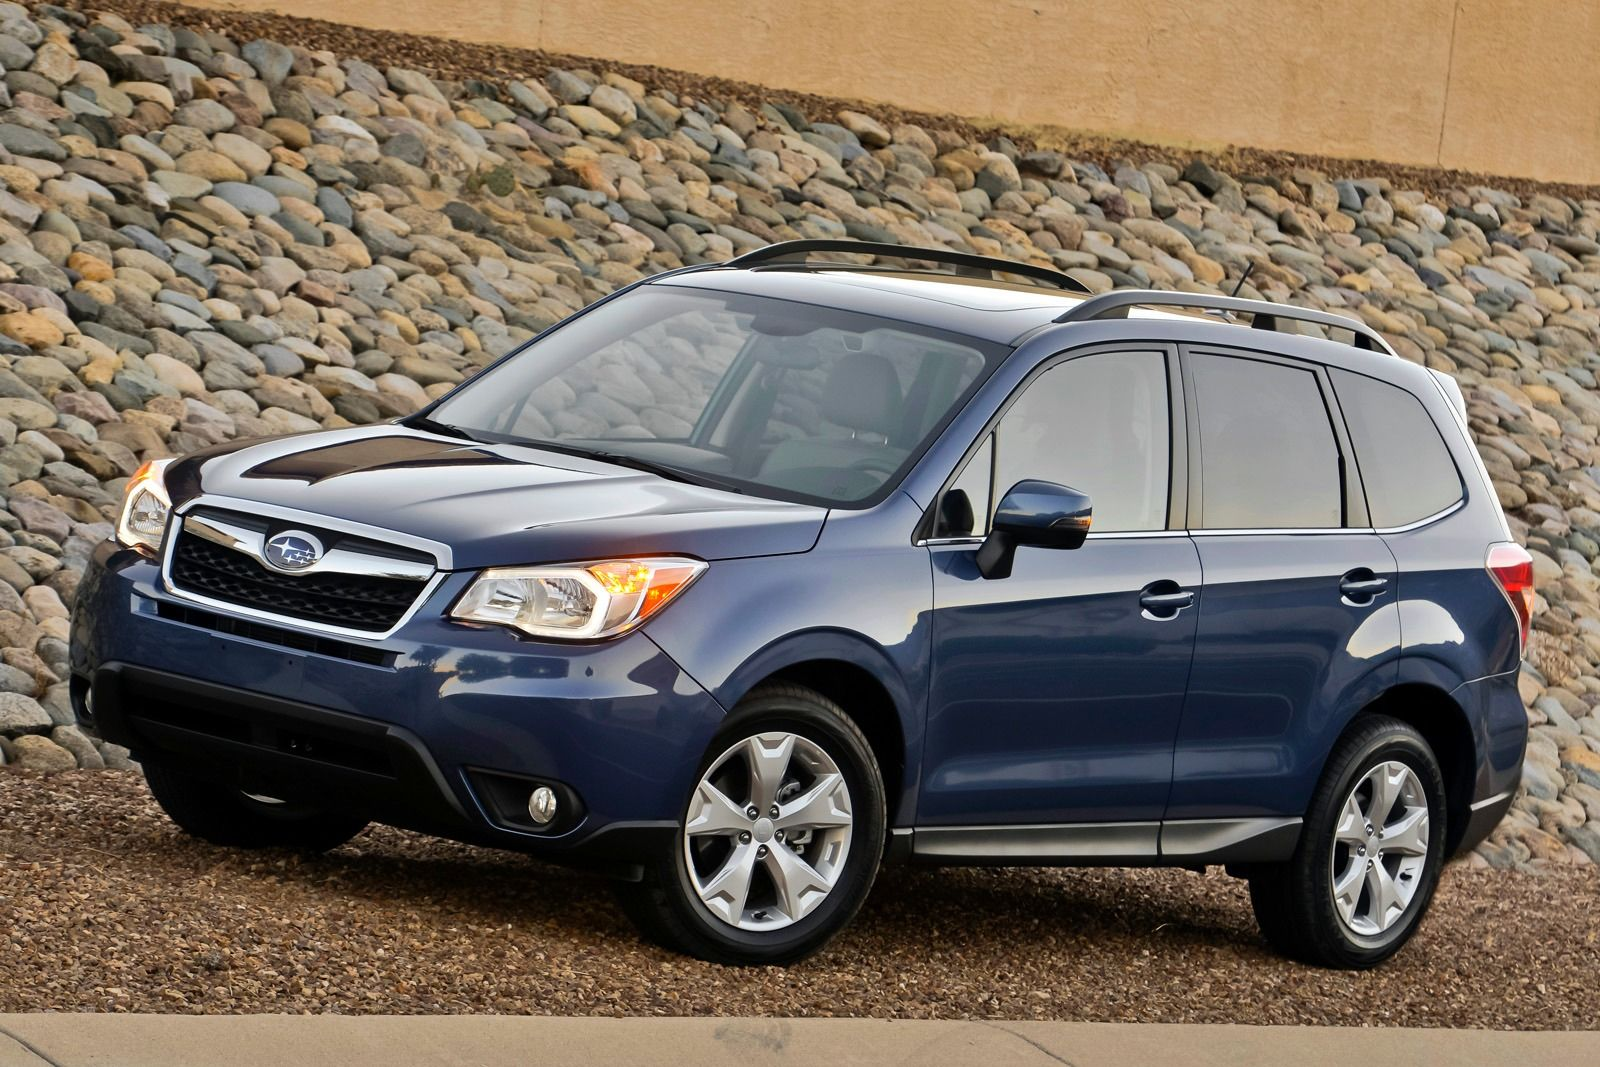 Subaru Forester 2.5i Limited PZEV #43